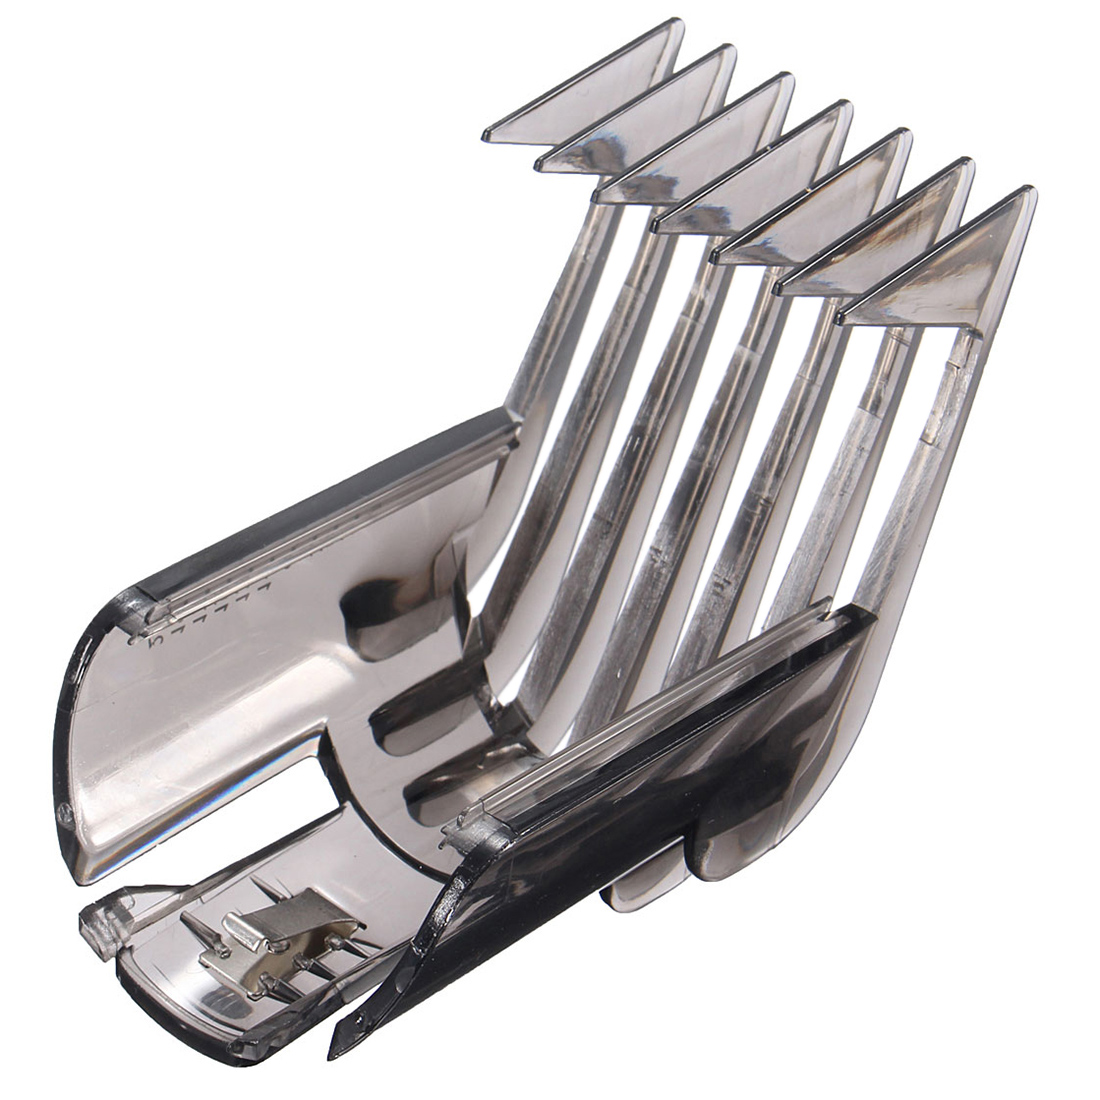 YOST-Hair Clippers Beard Trimmer comb attachment for Philips QC5130 / 05/15/20/25/35 3-21mm 4